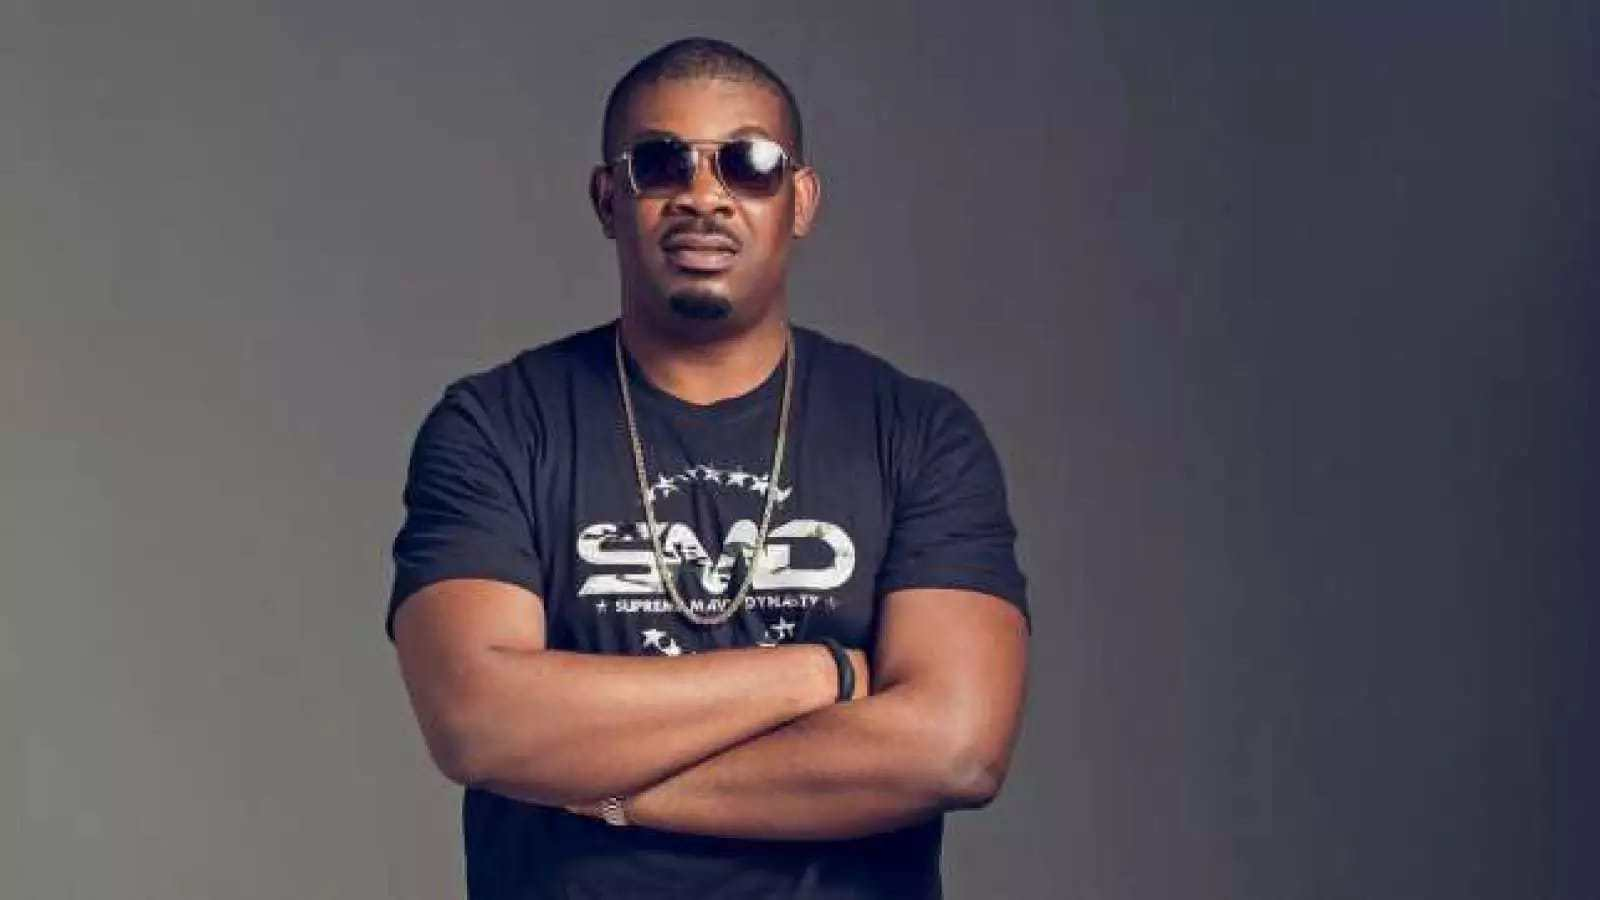 You never know who's watching – Don Jazzy says as he advises upcoming artistes to keep working